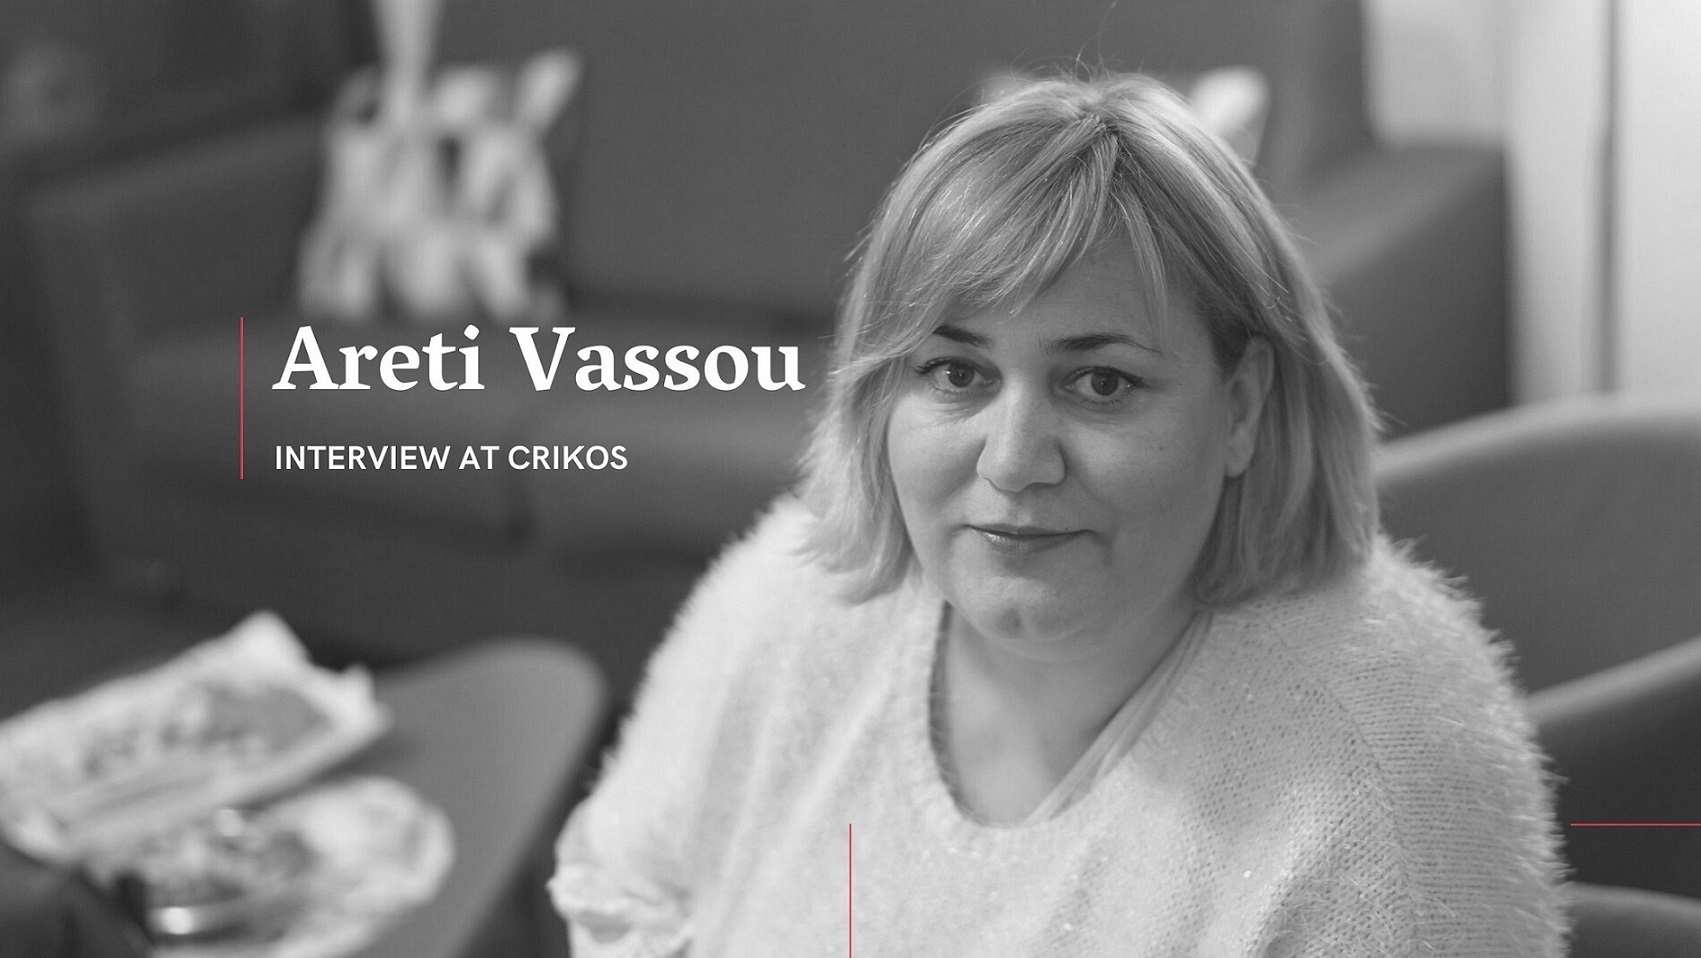 Areti Vassou Interview at Crikos